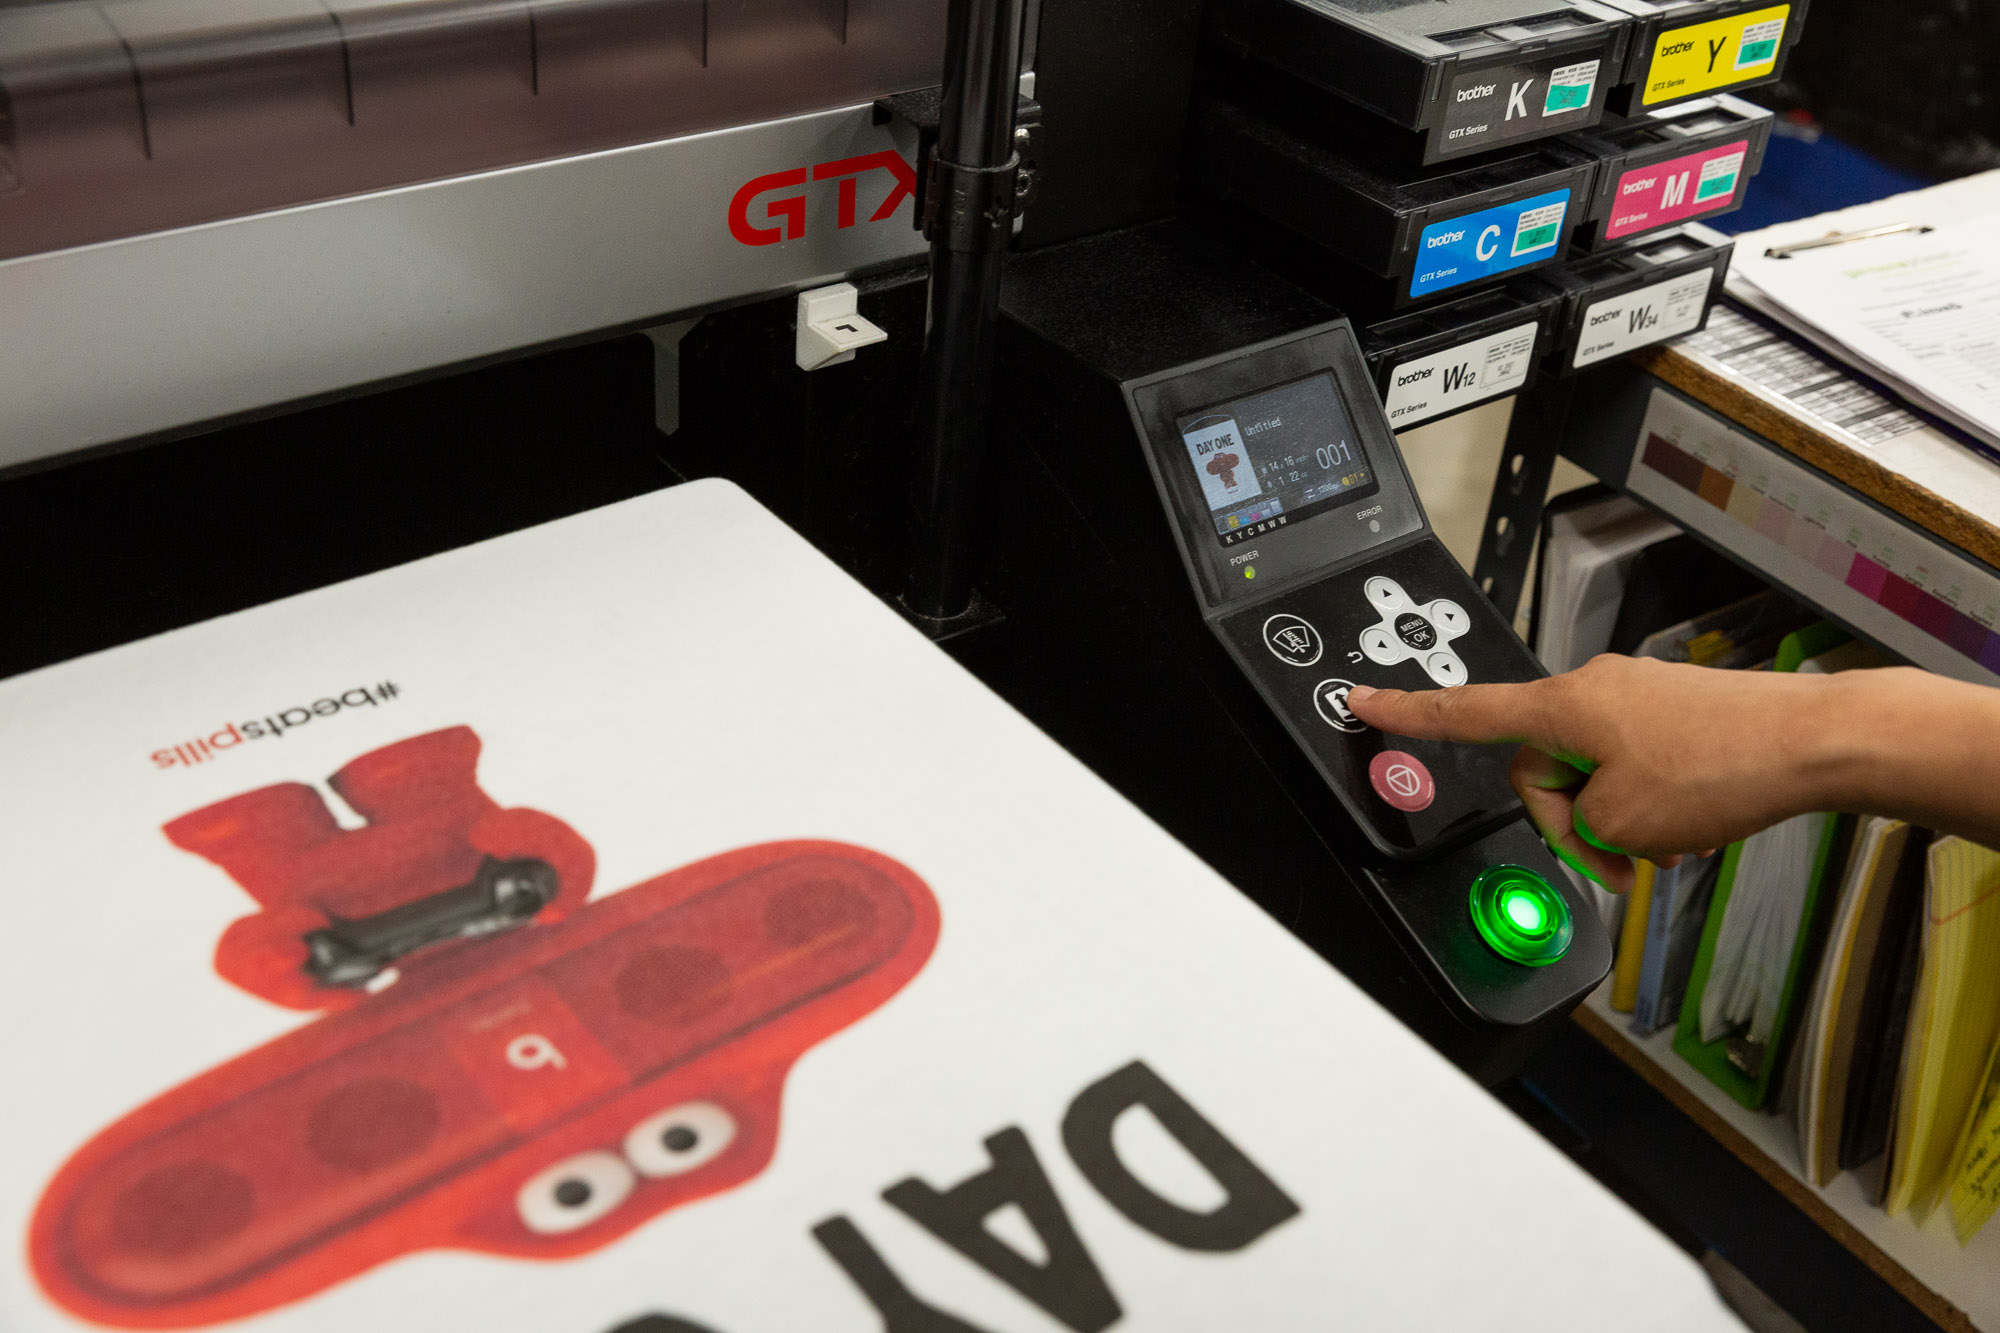 An employee configures settings on the Direct-to-Garment (DTG) printer.